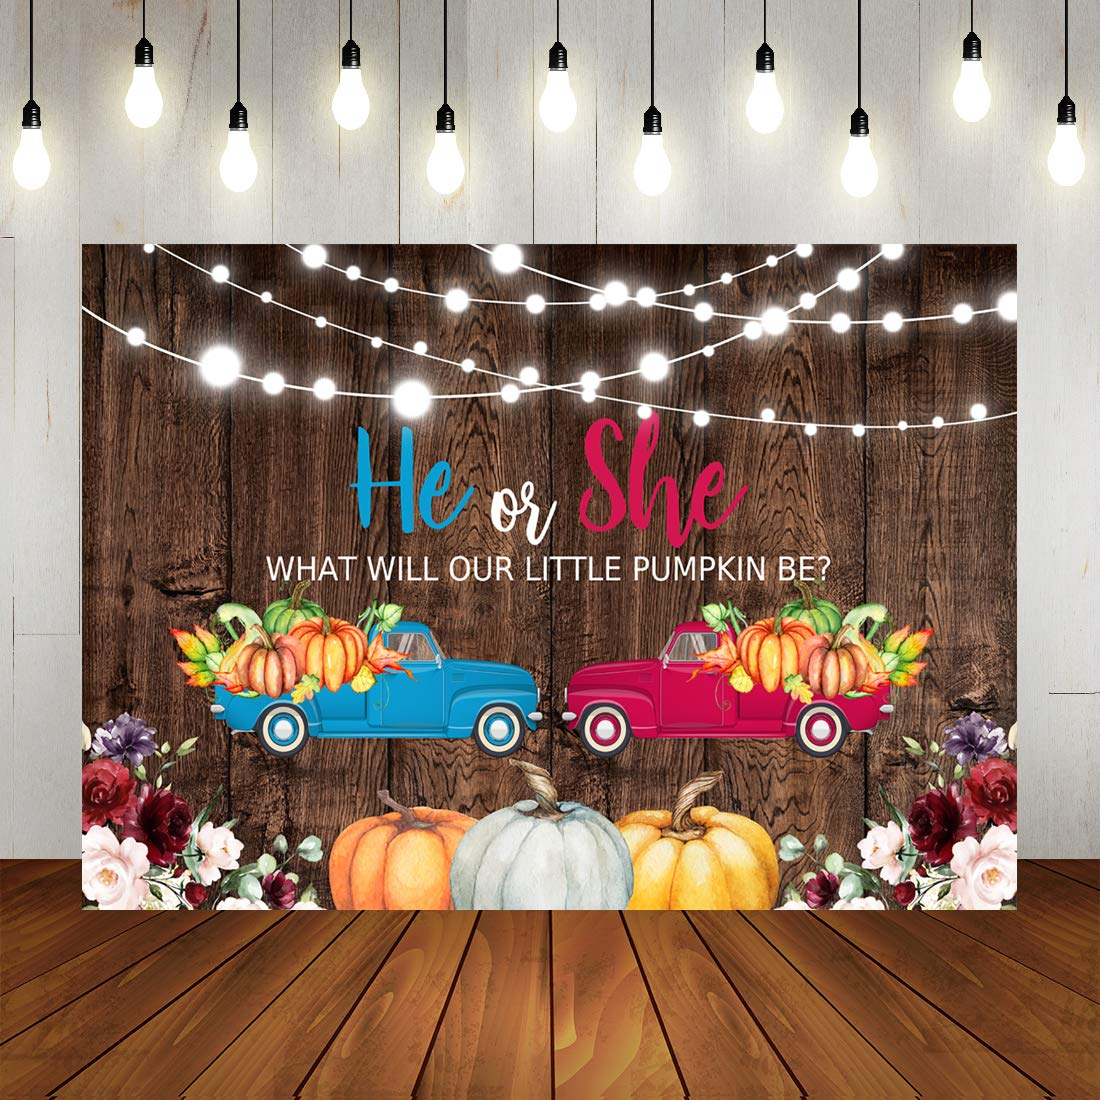 He or She Pumpkin Baby Shower Gender Reveal Backdrop Autumn Fall Pumpkin Harvest Festival Blue or Pink Car Gender Reveal Photography Background Shining Lights Watercolor Floral Brown Wooden Pregnancy by LoveInM